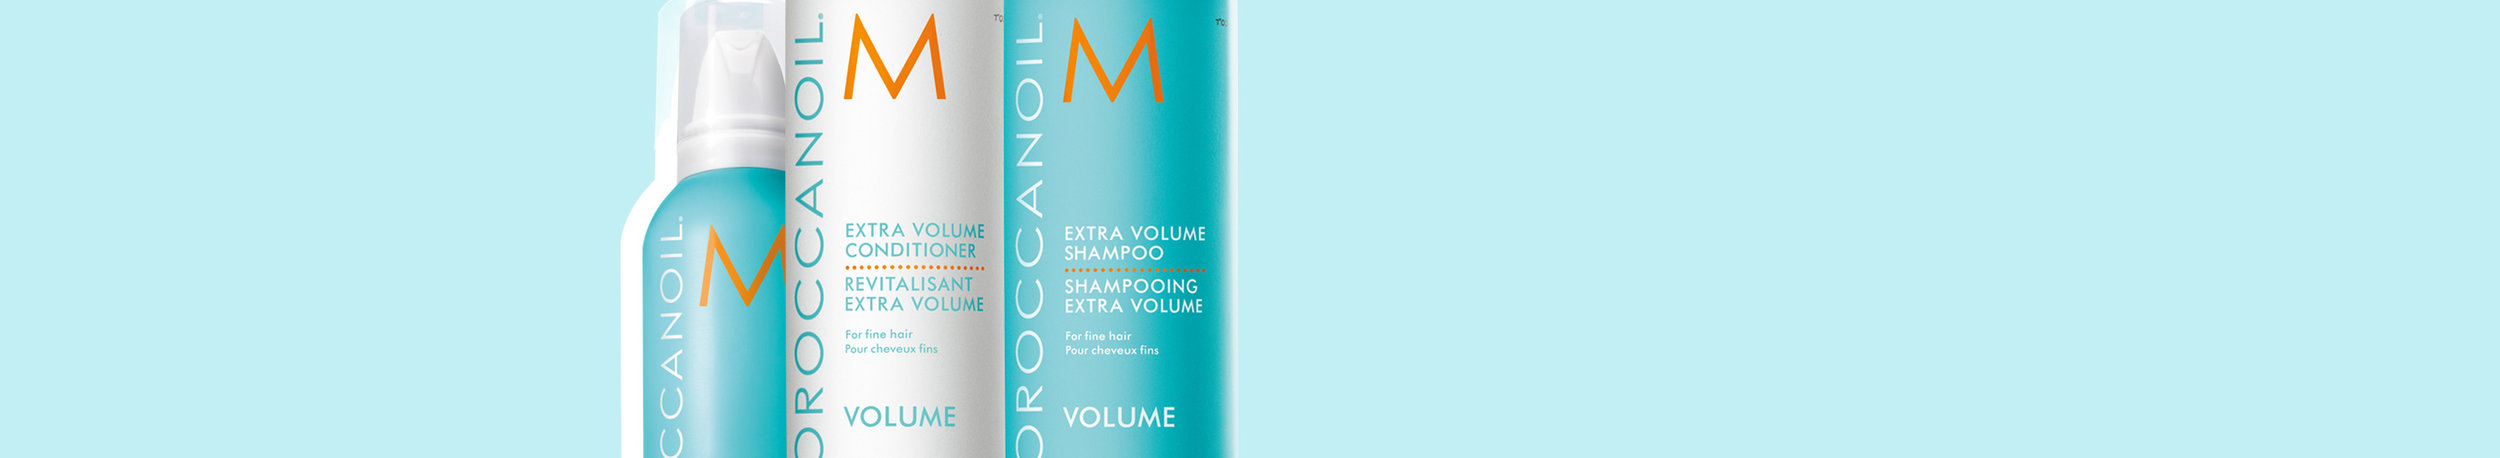 Volume collection - Give normal to fine hair an all-over boost of body and life with these volumizing products that won't weigh hair down.